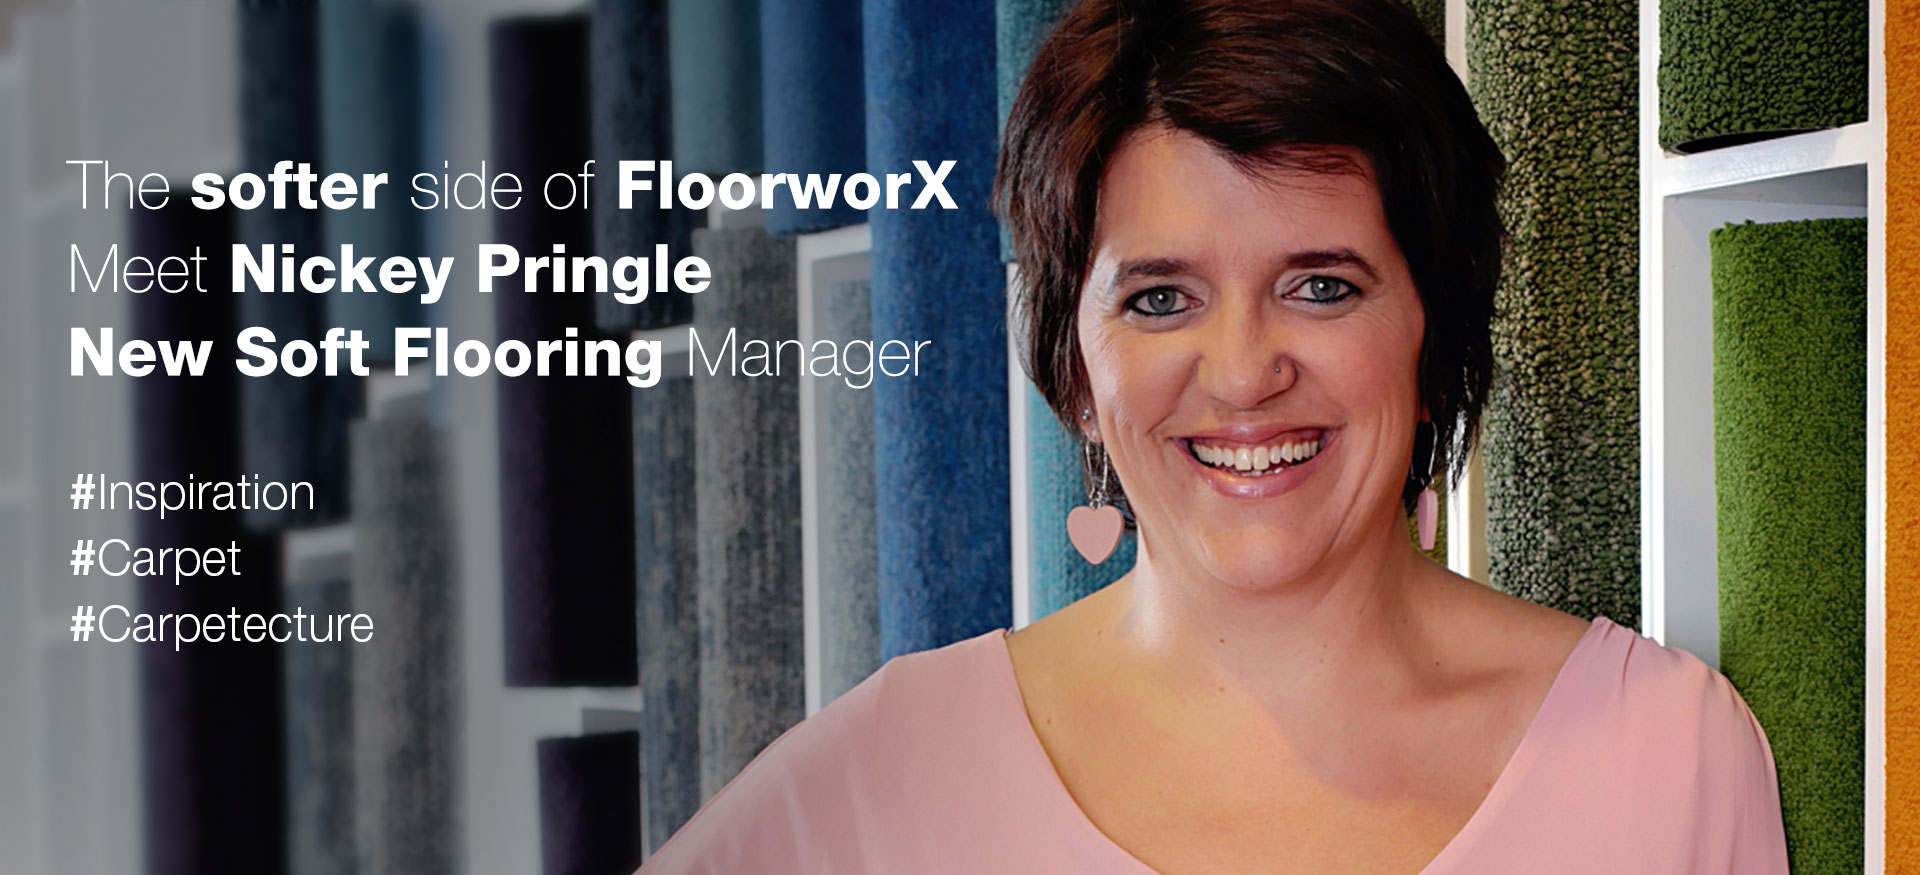 Local flooring company appoints new soft flooring manager